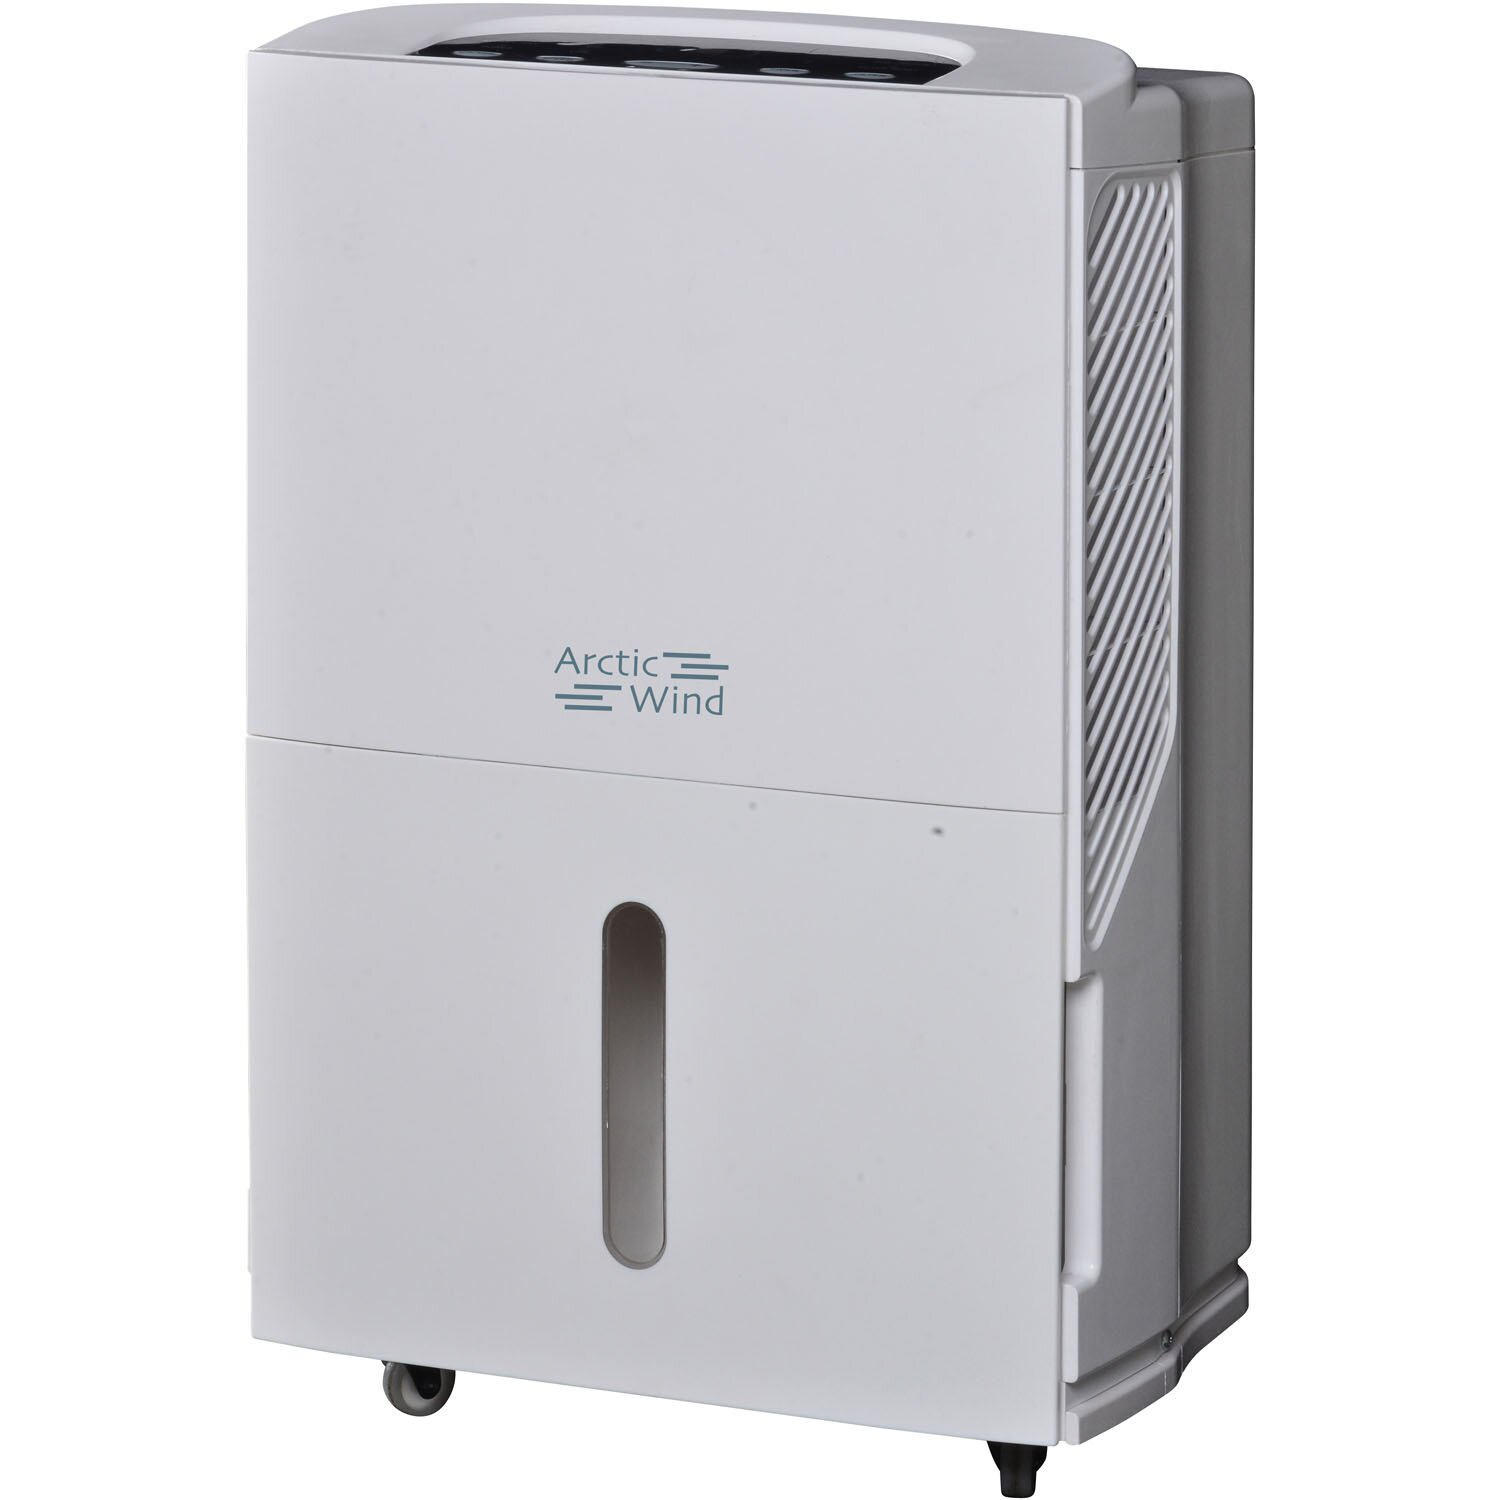 Arctic Wind 70 Pint Dehumidifier & Reviews Wayfair #5D656E